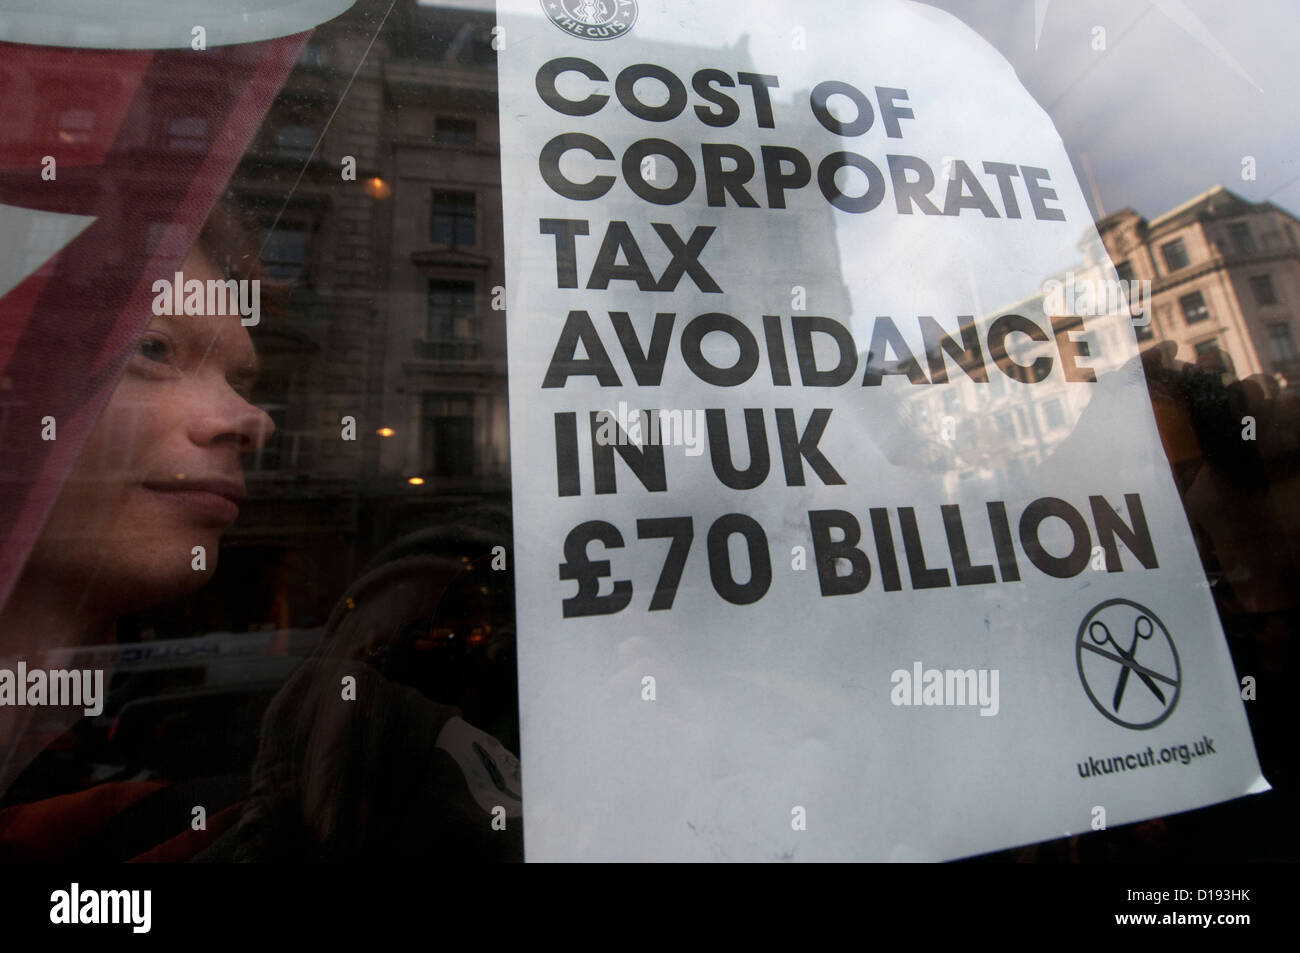 UK Uncut flashmob occupy Starbucks because they have paid no corporation tax for the last three years. - Stock Image